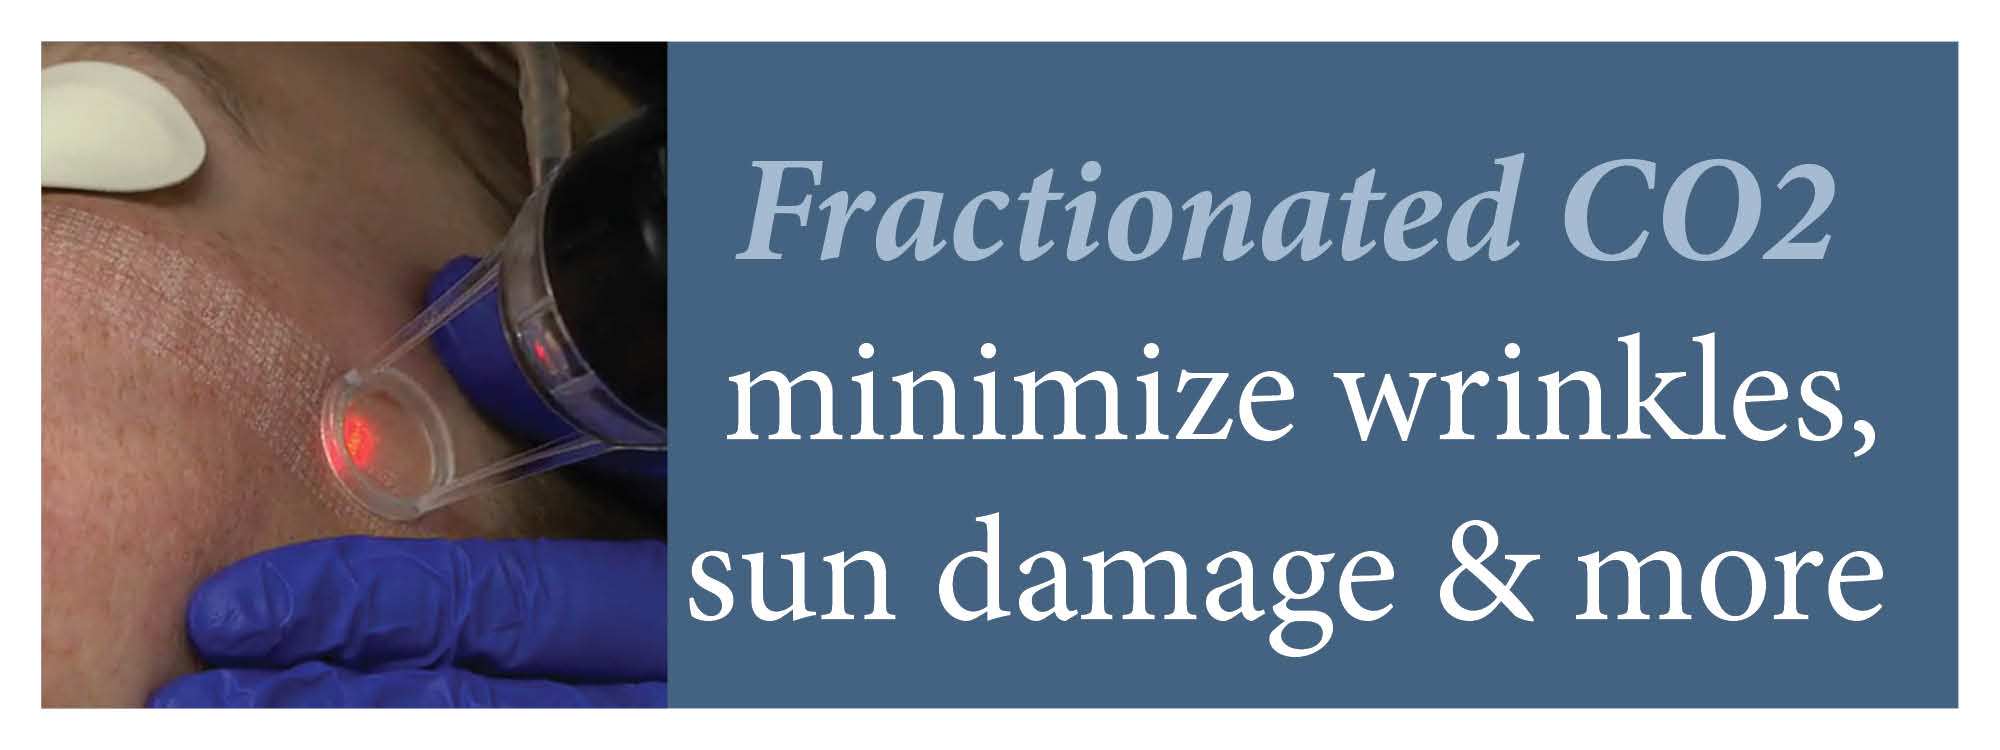 Fractional CO2